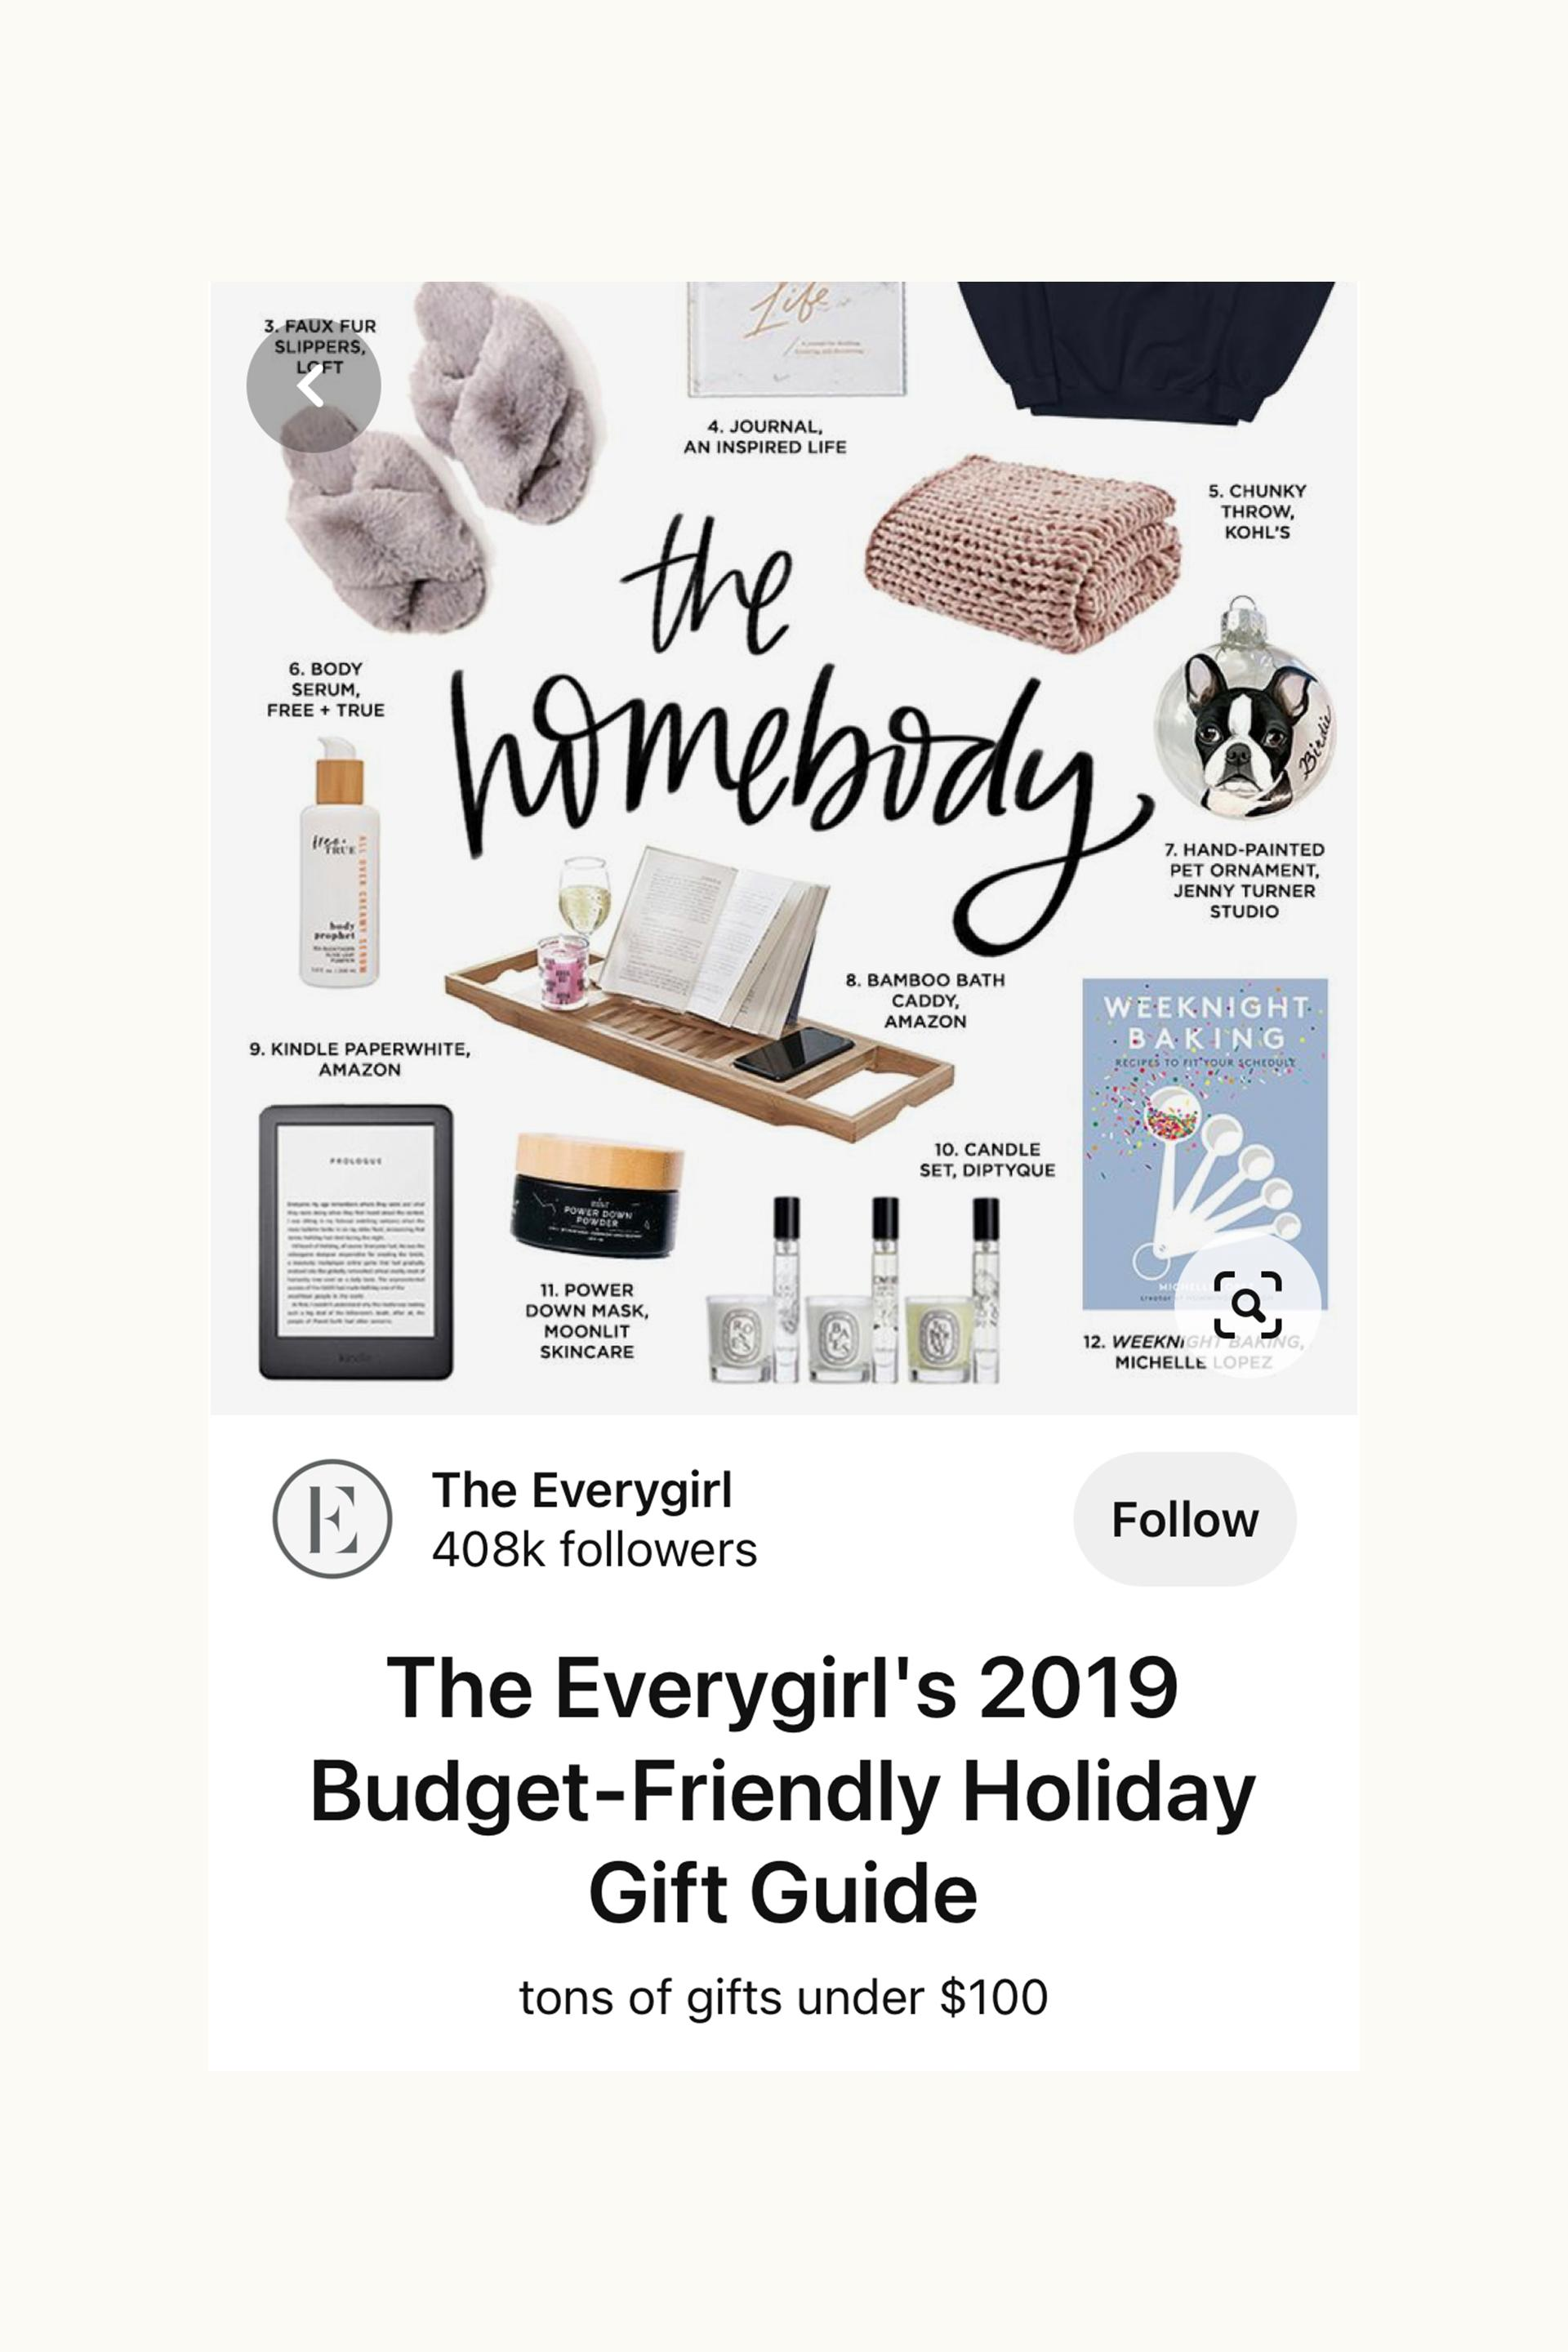 PLANOLY - Blog Post - How to Create a Gift Guide - Image 6